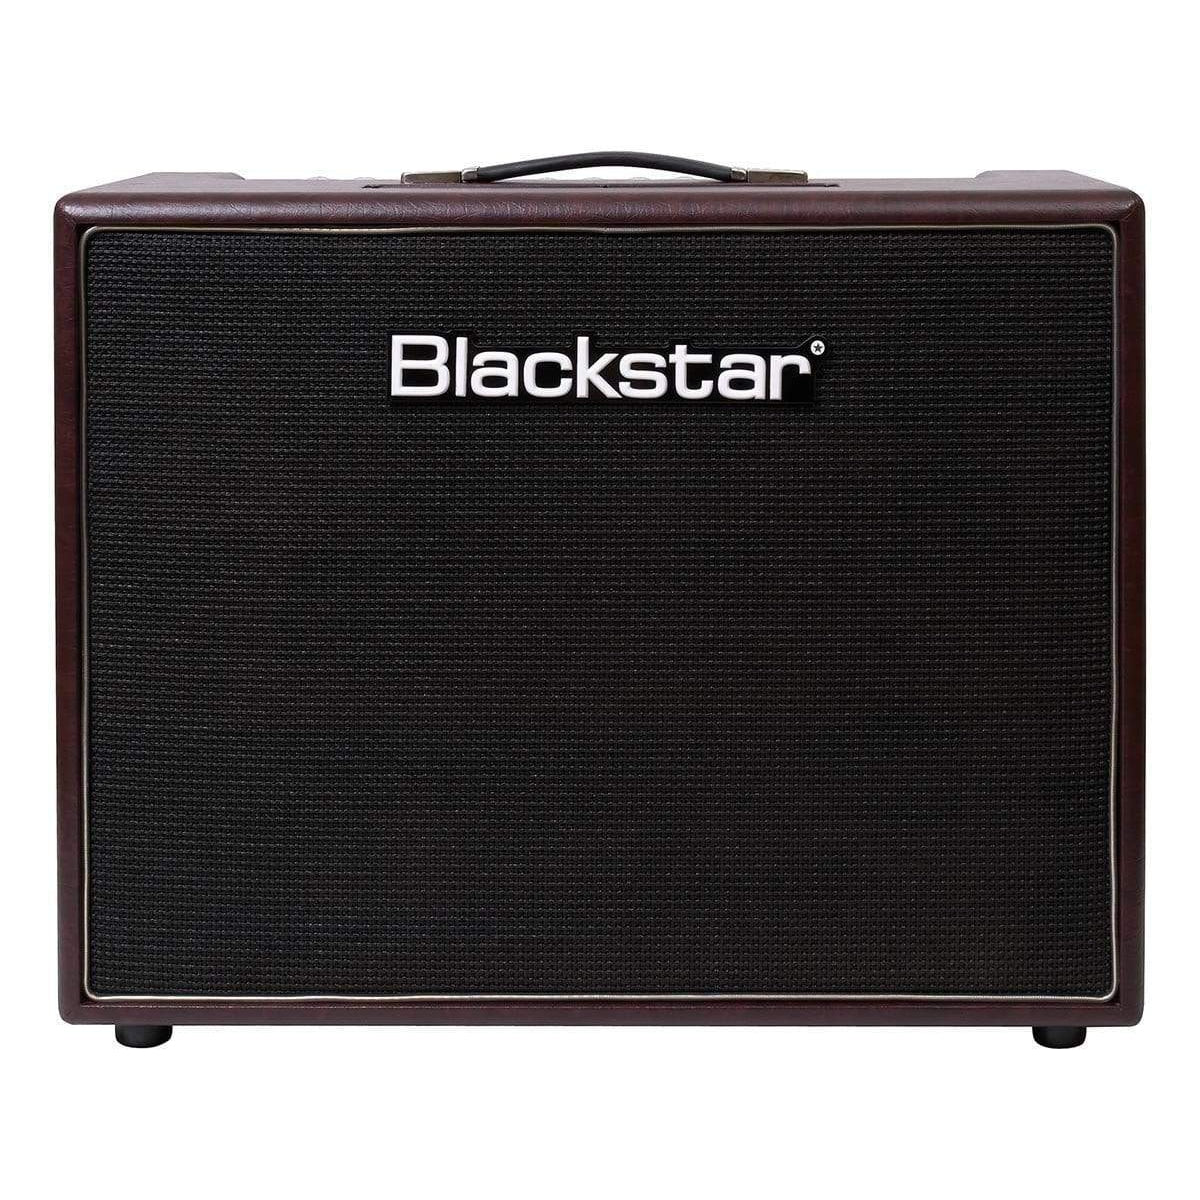 BlackStar Accessories Blackstar Artisan 30 Guitar Amplifier